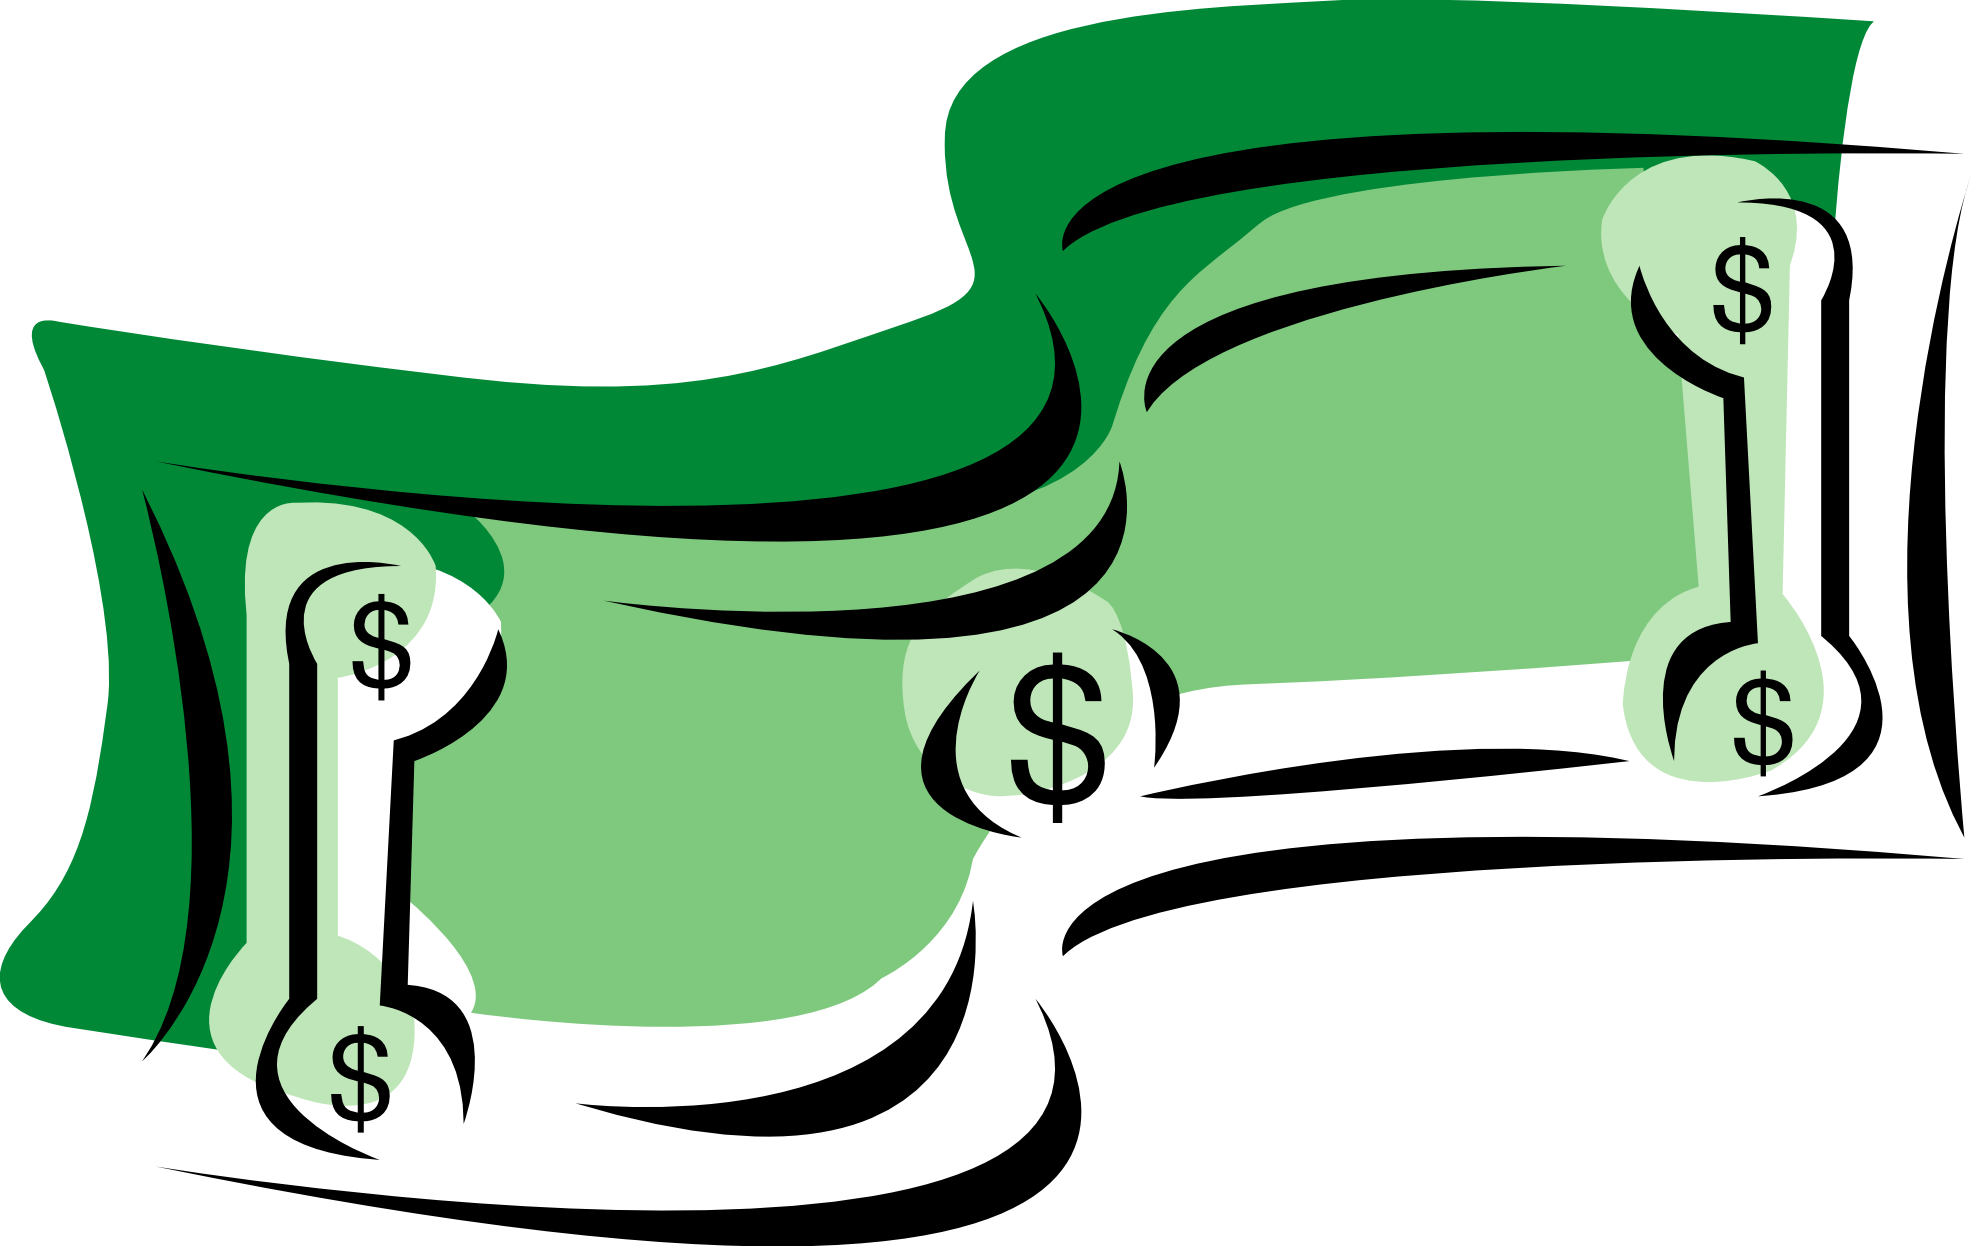 Dollar clipart bill due. One clip art